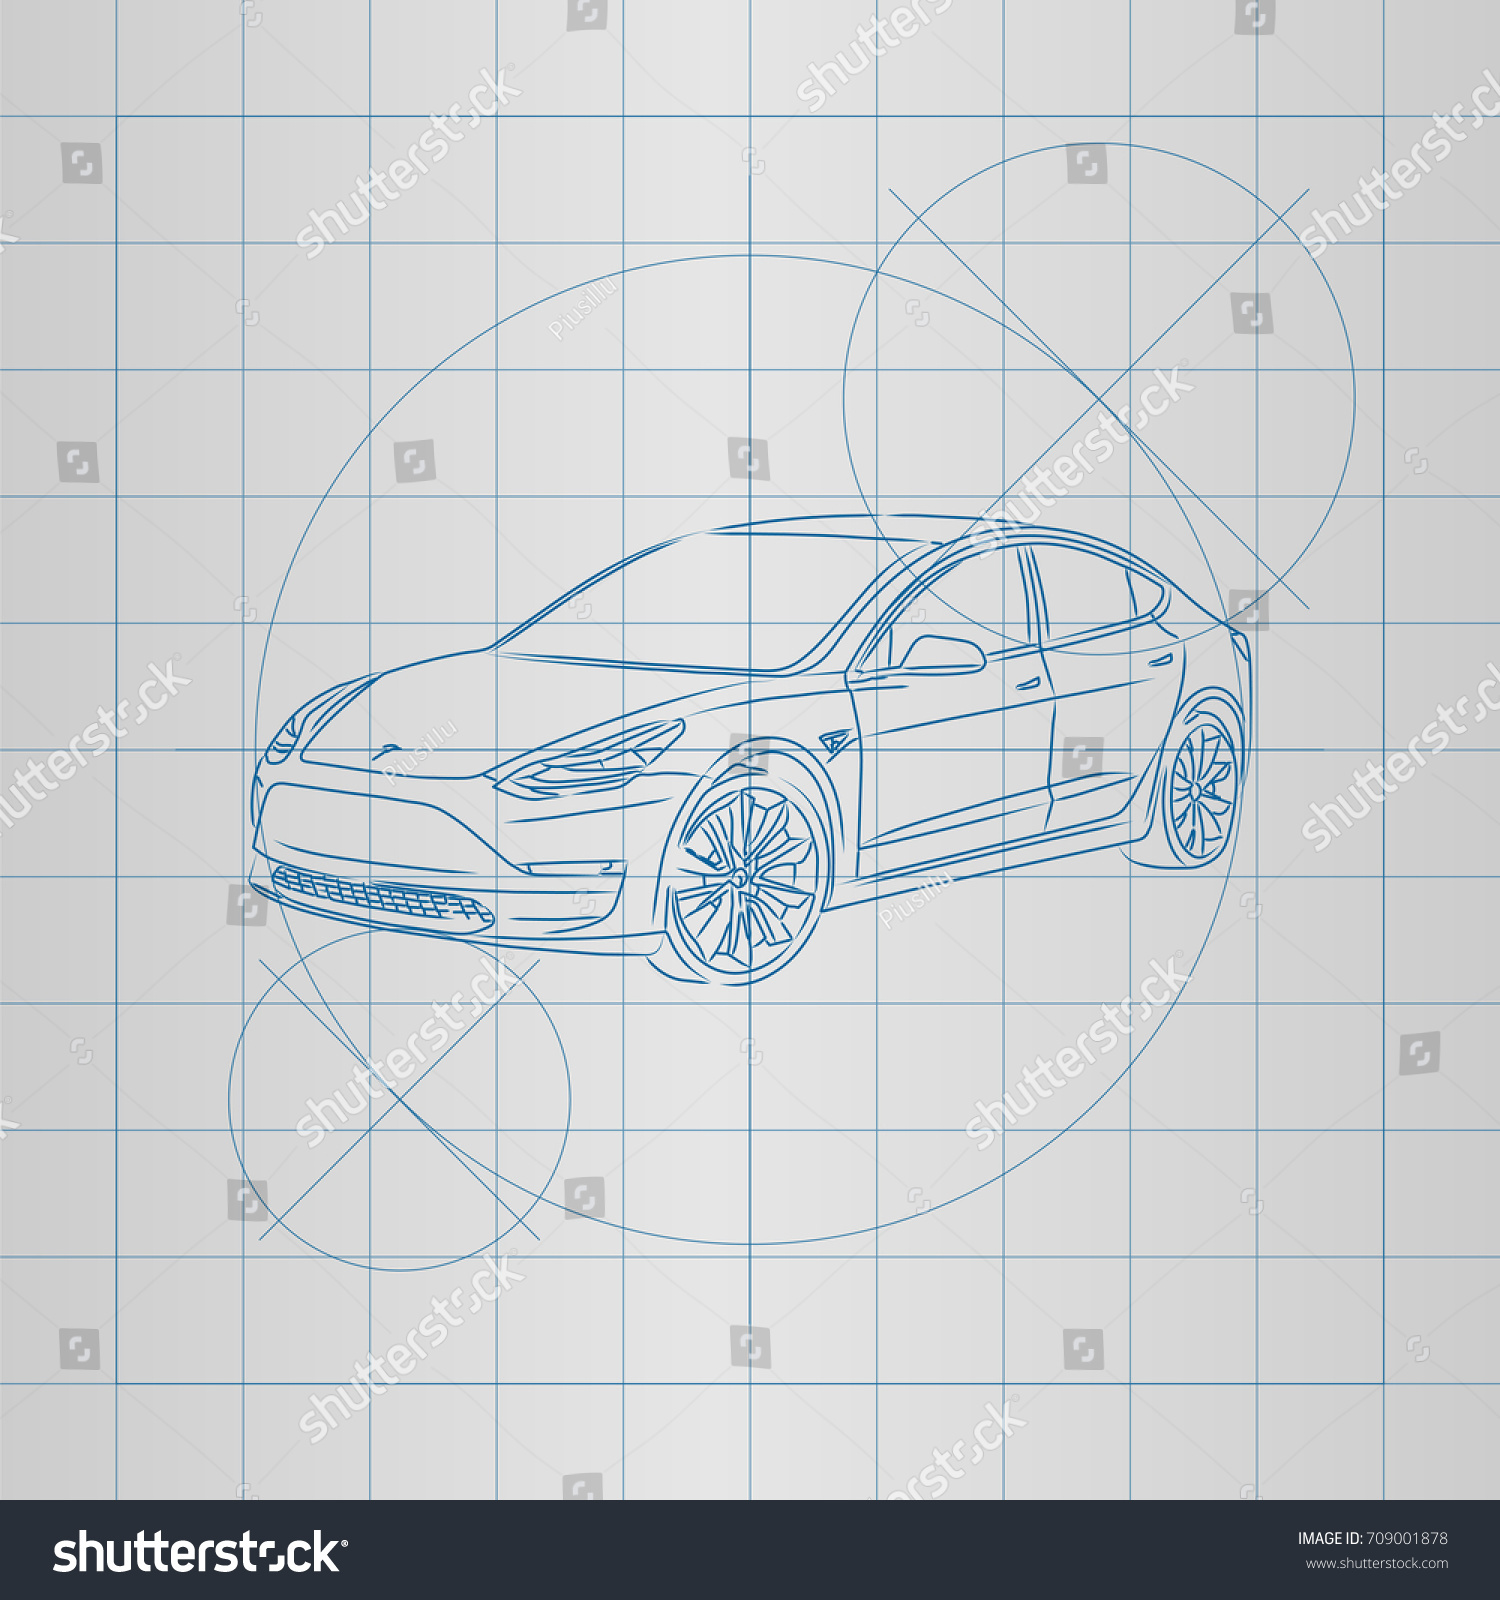 Design electric car drawing on blueprint stock photo photo vector the design of a electric car drawing on a blueprint vector illustration malvernweather Images